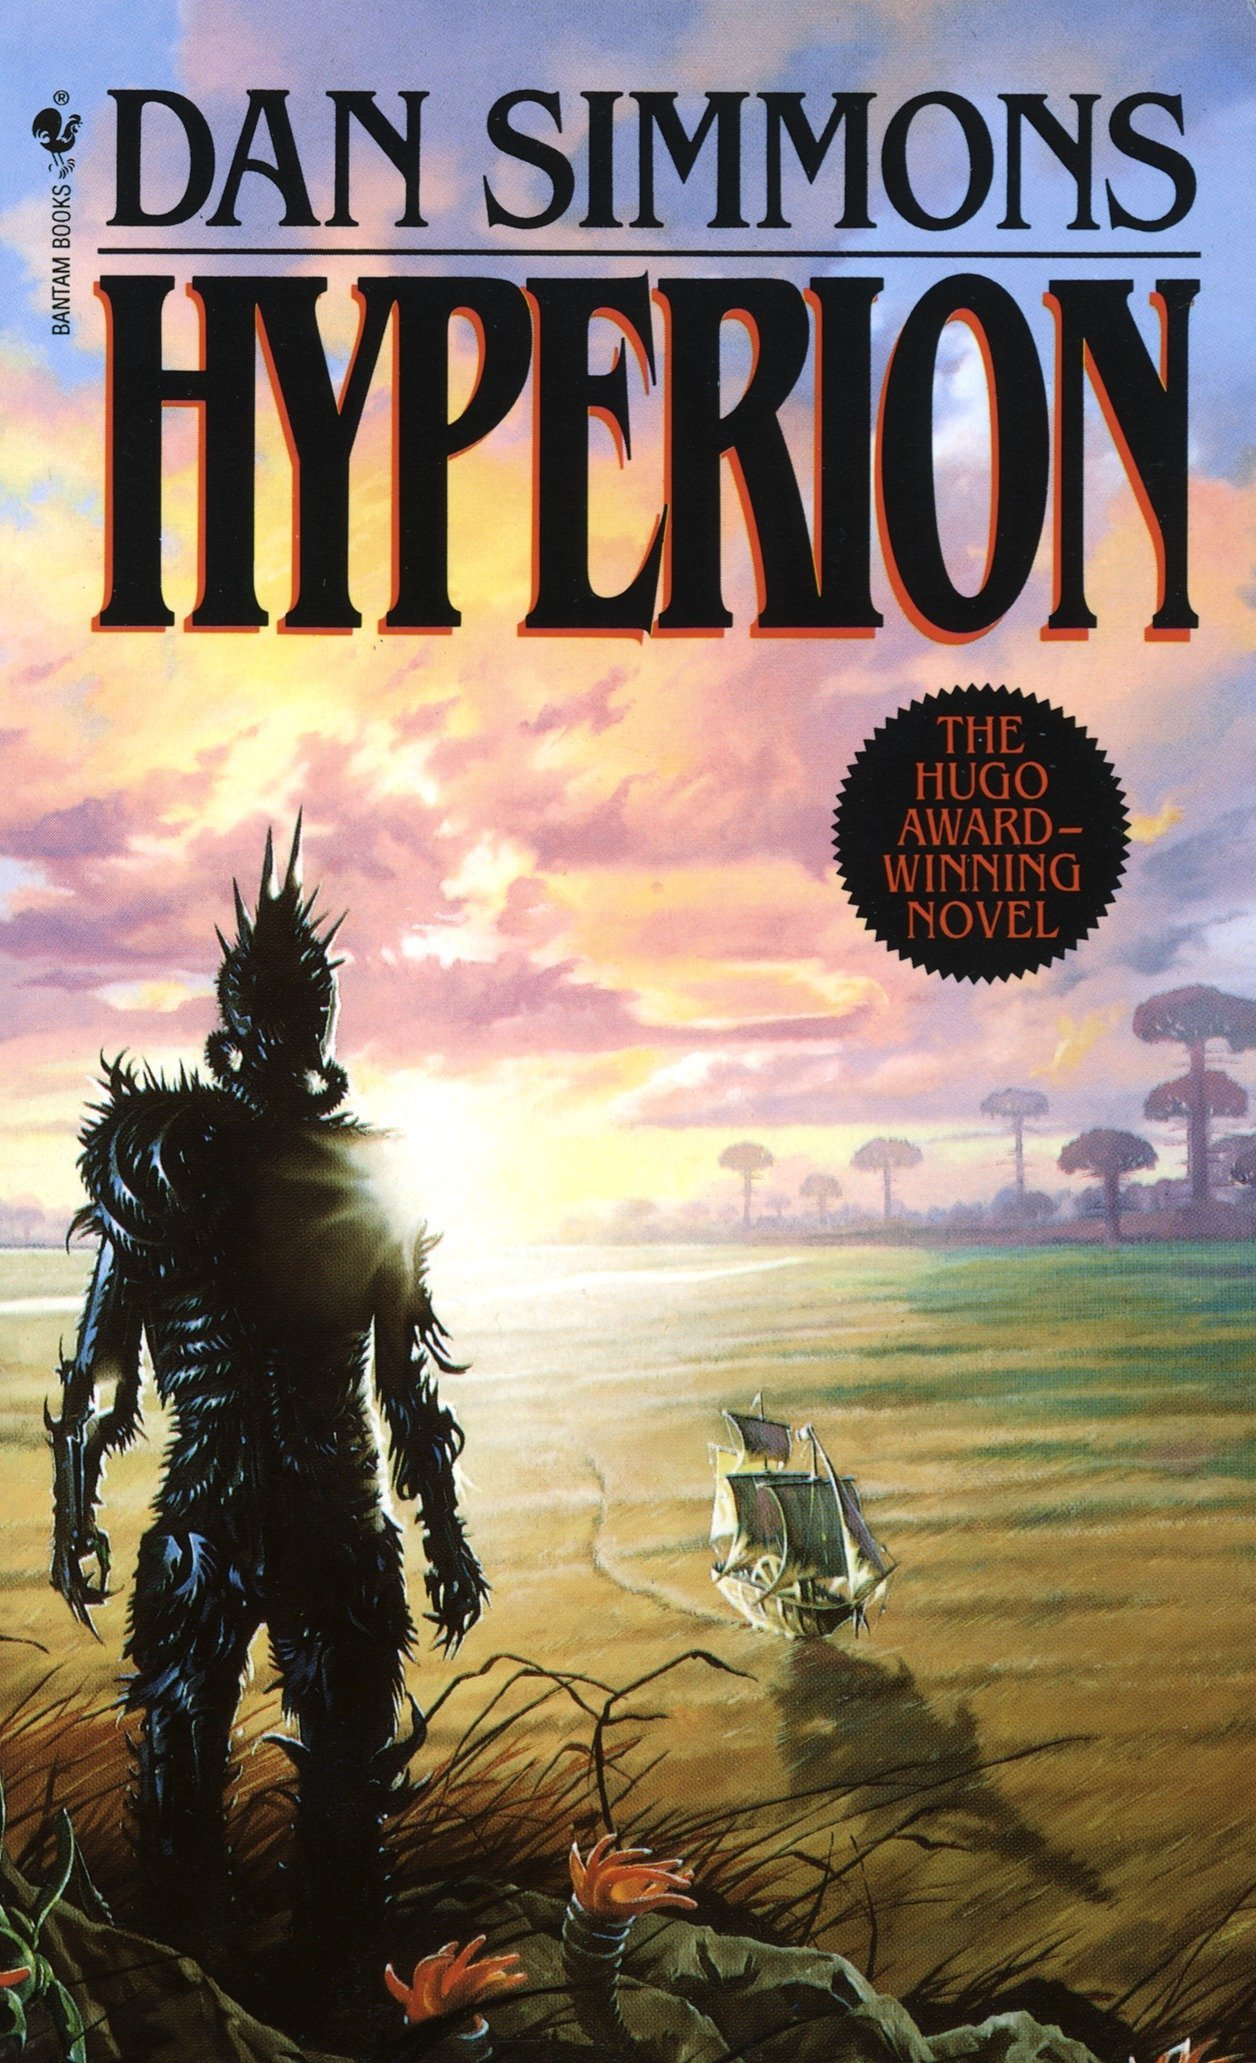 16) Hyperion - Dan Simmons' Hyperion is most often described as a sci-fi Canterbury Tales. Truth be told, that's underselling it. The novel is about a group of travelers making a pilgrimage to the Time Tombs on planet Hyperion, wherein each pilgrim will make a request to a creature called the Shrike. However, legend has it that the Shrike only accepts one of the pilgrim's requests and kills the rest of the group afterwards. The novel is broken up into each traveler's story in which they reveal why they're on such a desperate journey. When it comes to world building, character development, and originality, it's hard to top what Simmons has accomplished with his debut novel. An incredibly stylistic novel that's packed with literary references, Hyperion is one hell of a page-turner.